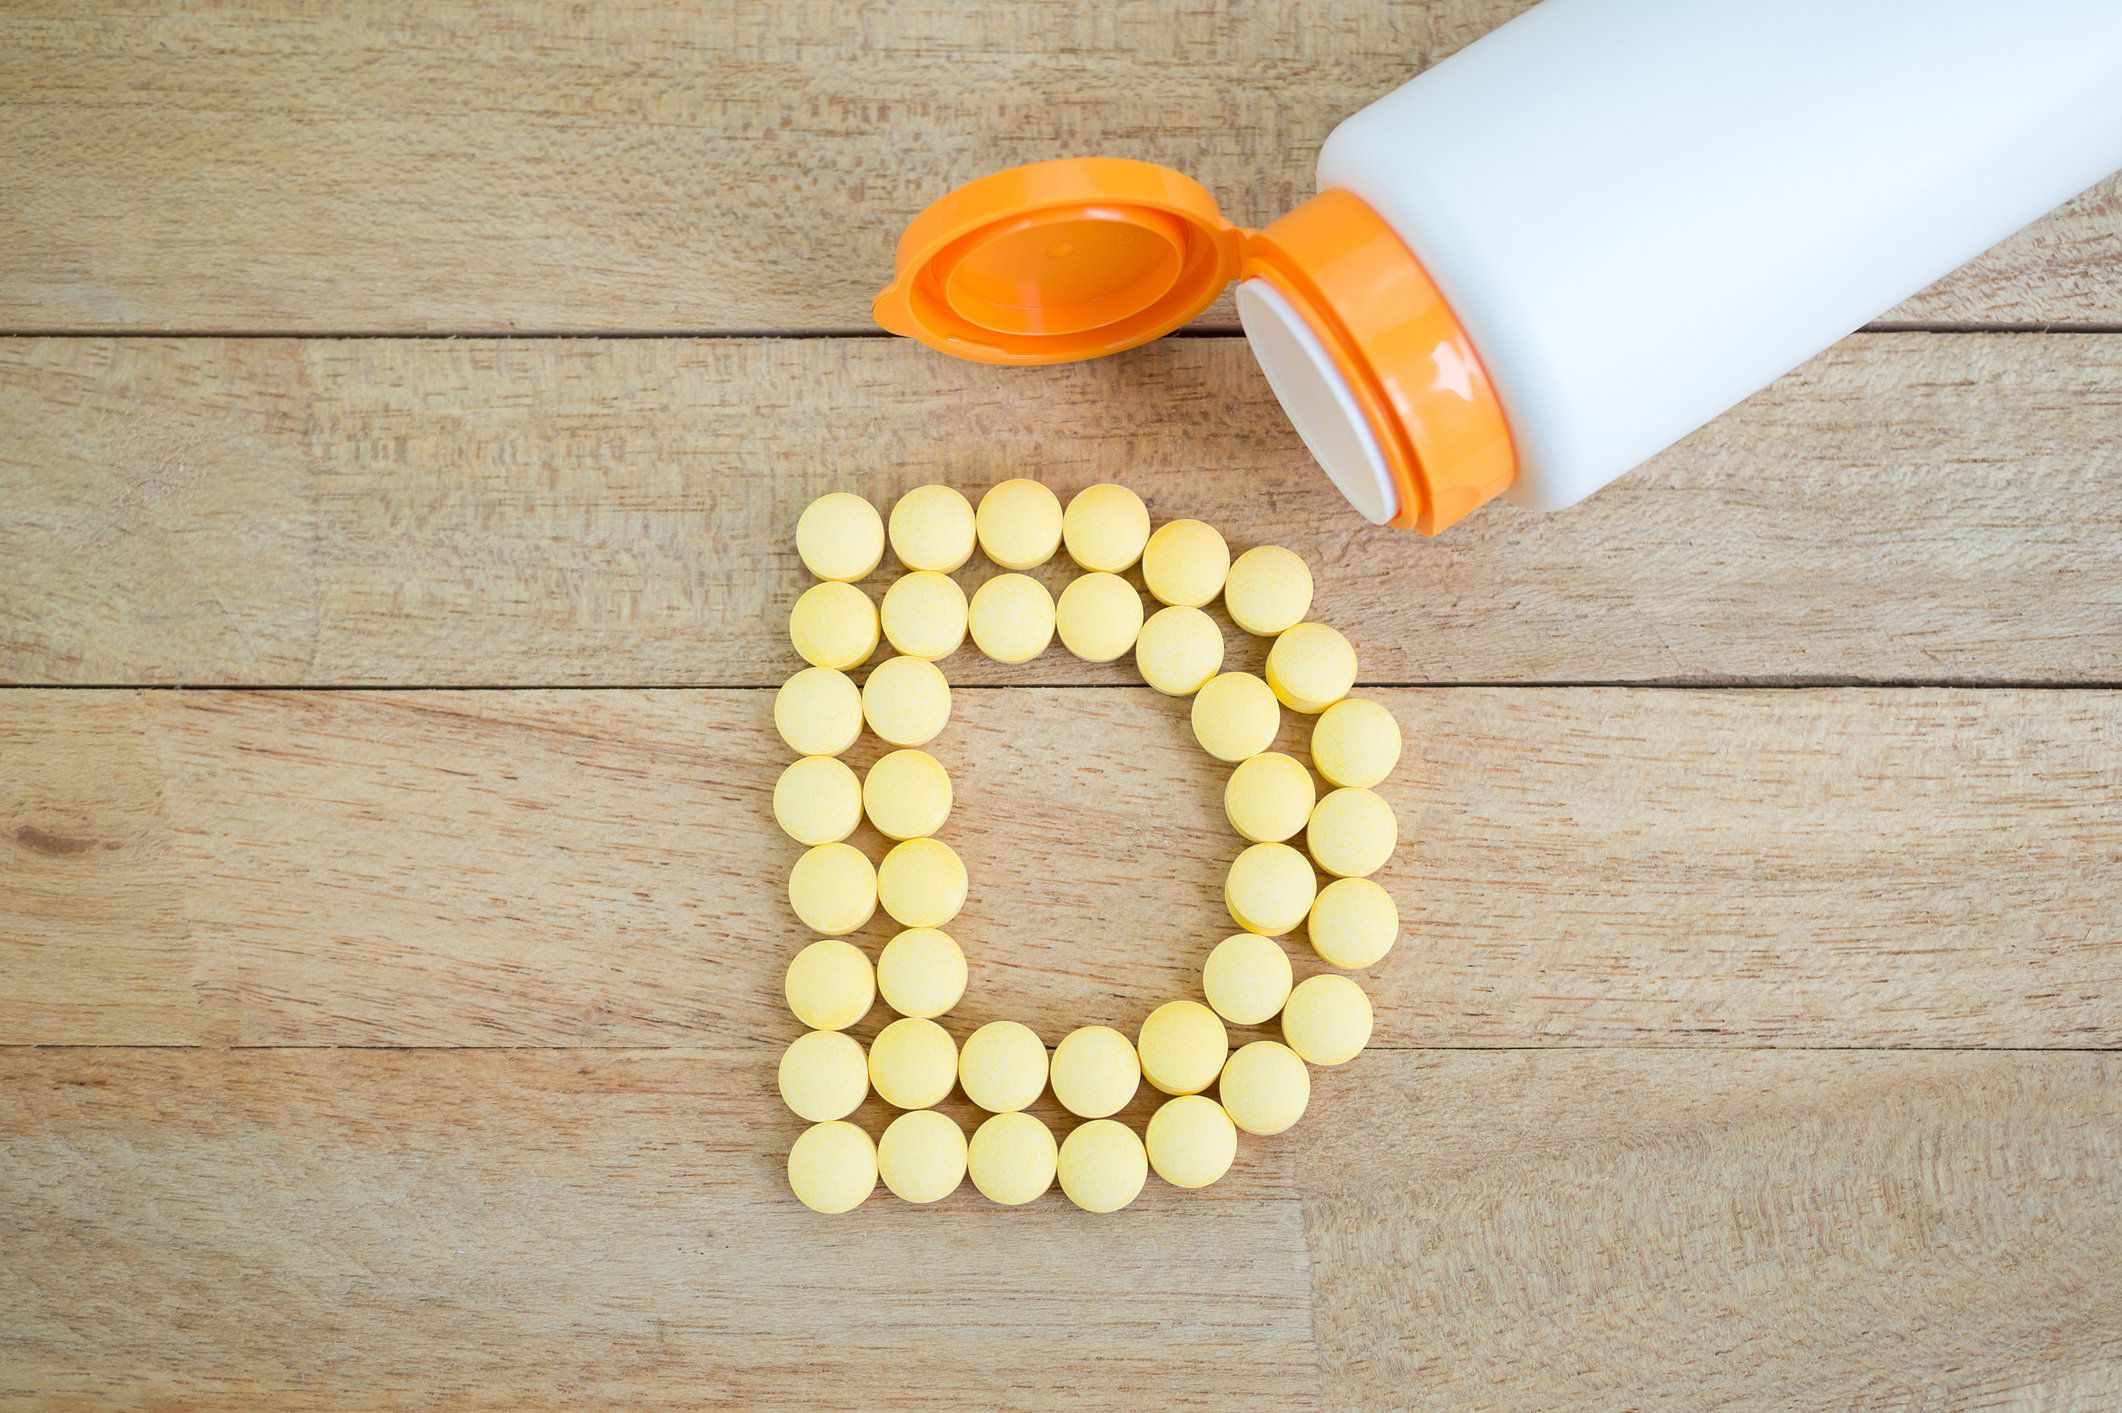 Vitamin D supplements do not improve bone health, major study finds